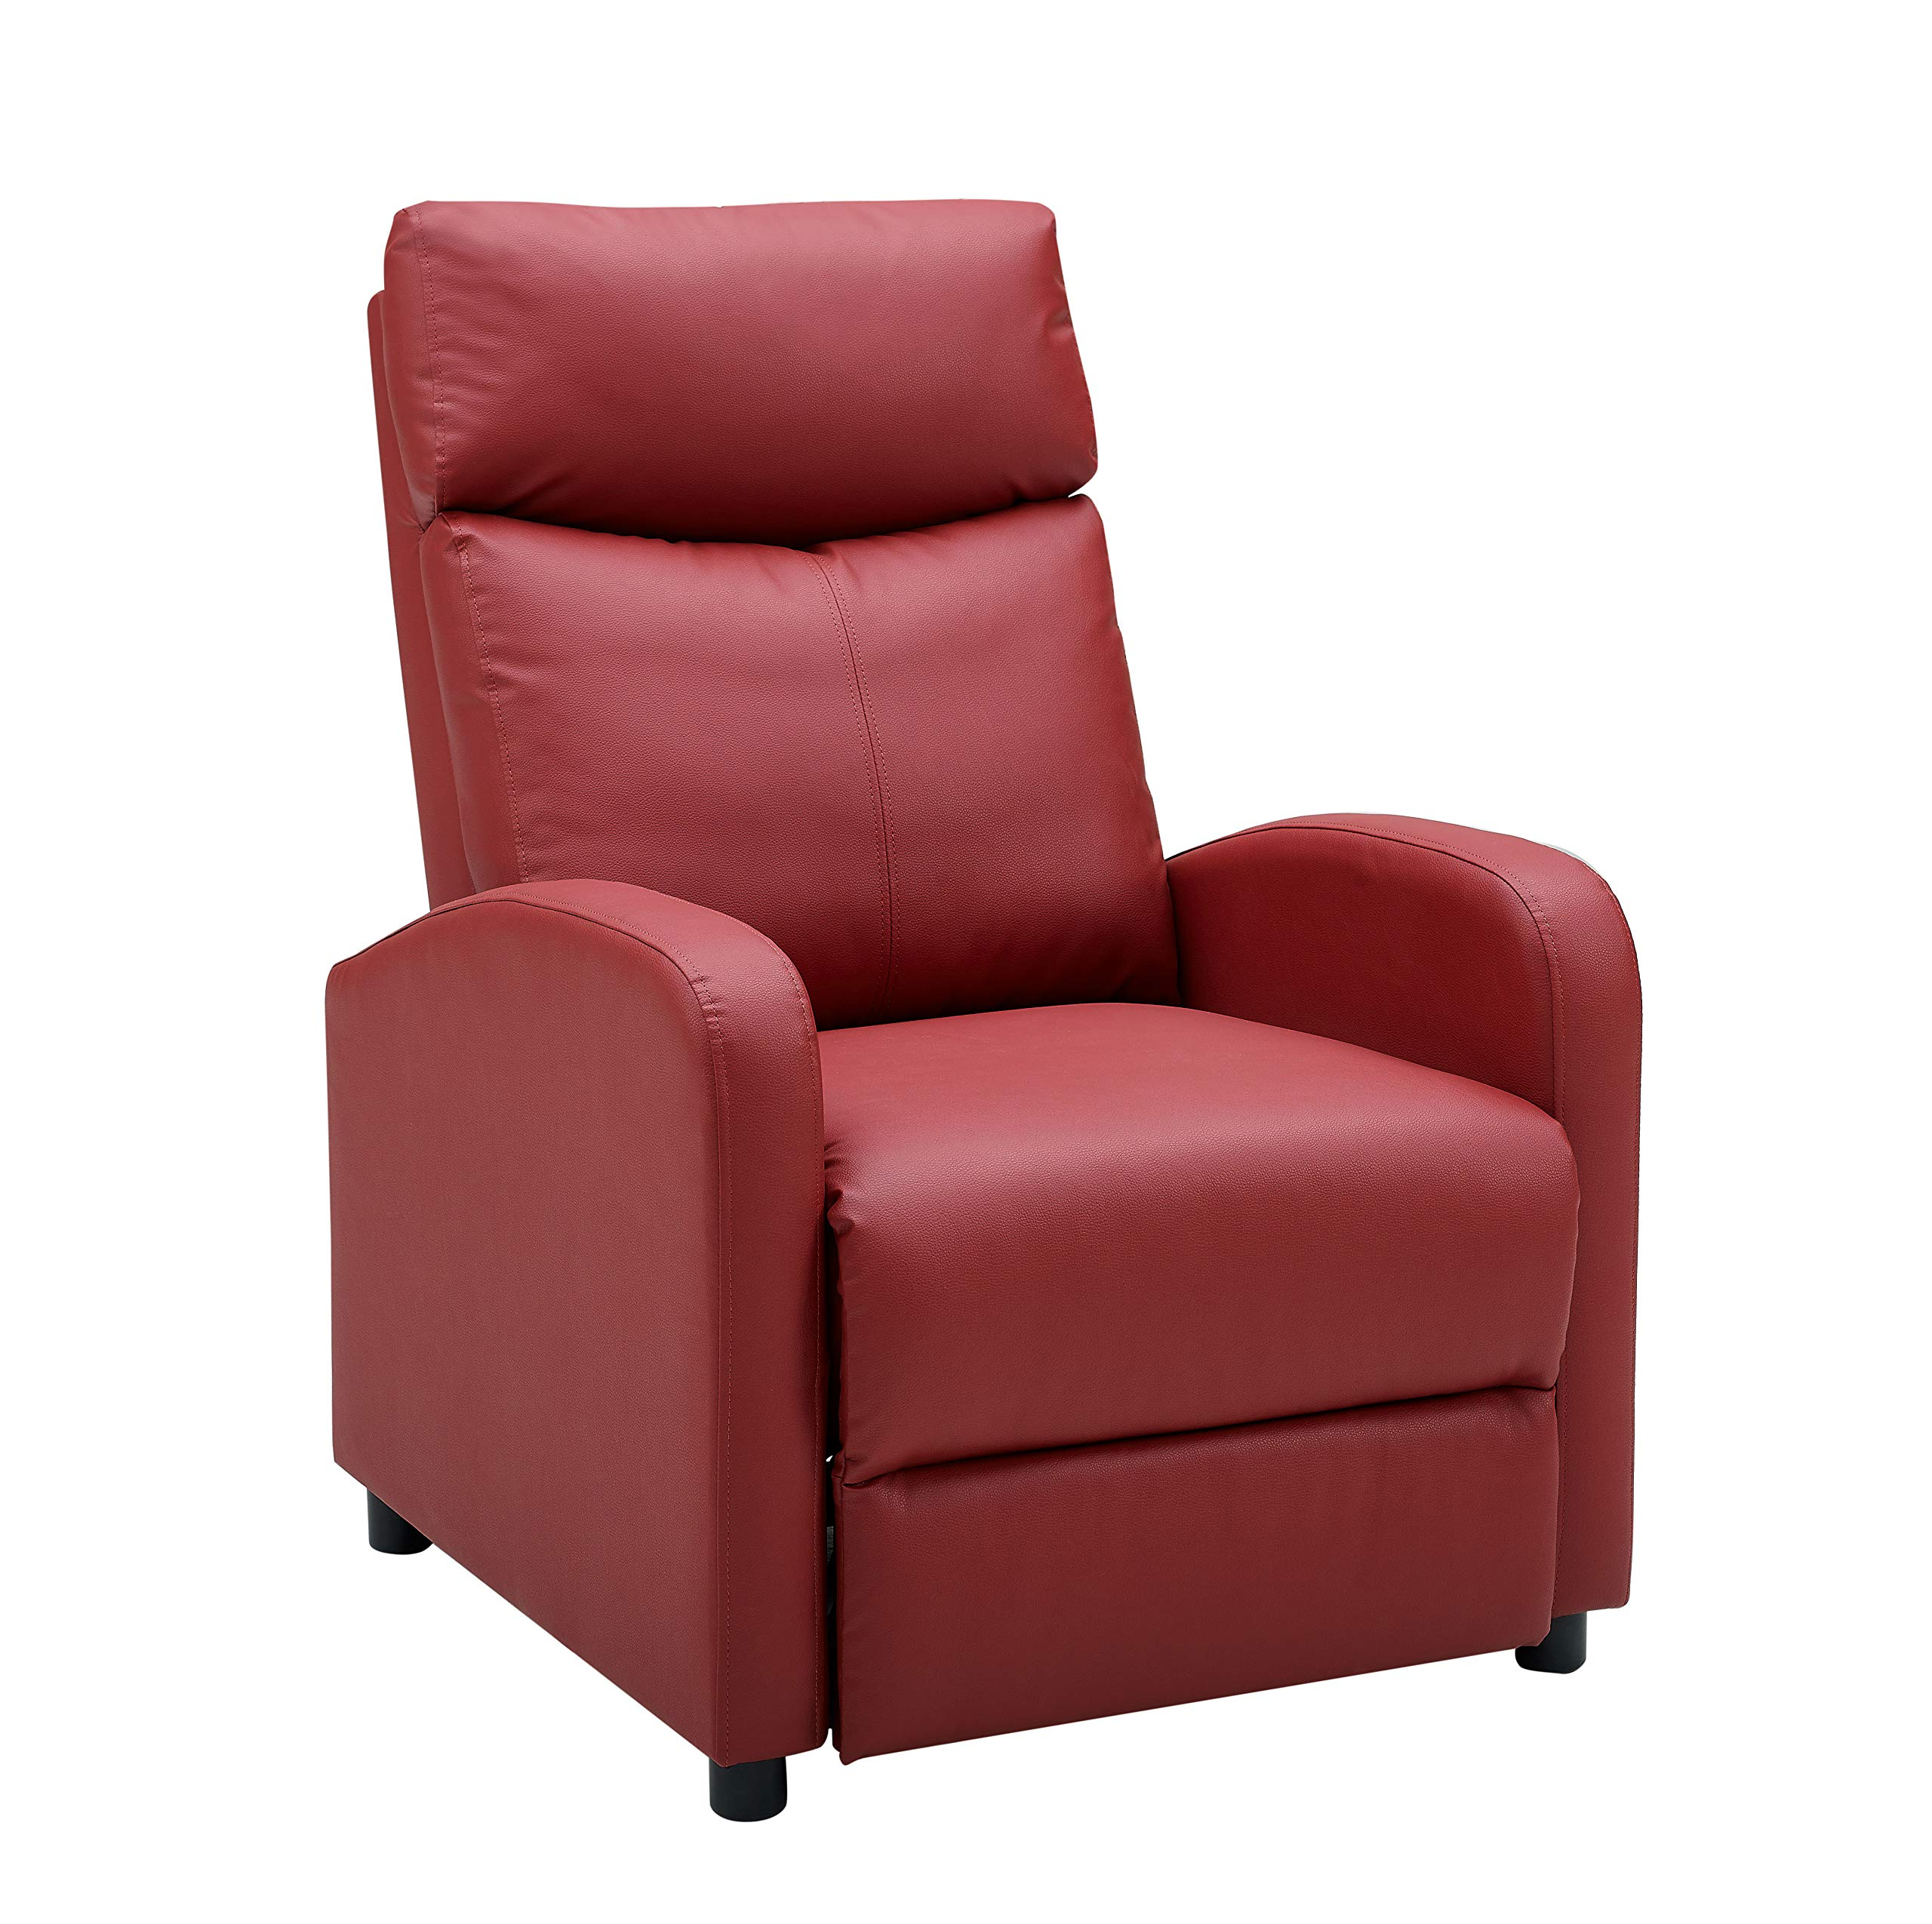 Single Recliner Chair Padded Seat PU Leather Living Room Sofa Recliner Modern Recliner Seat Club Chair Home Theater Seating (Vine Red) by LifeDecor